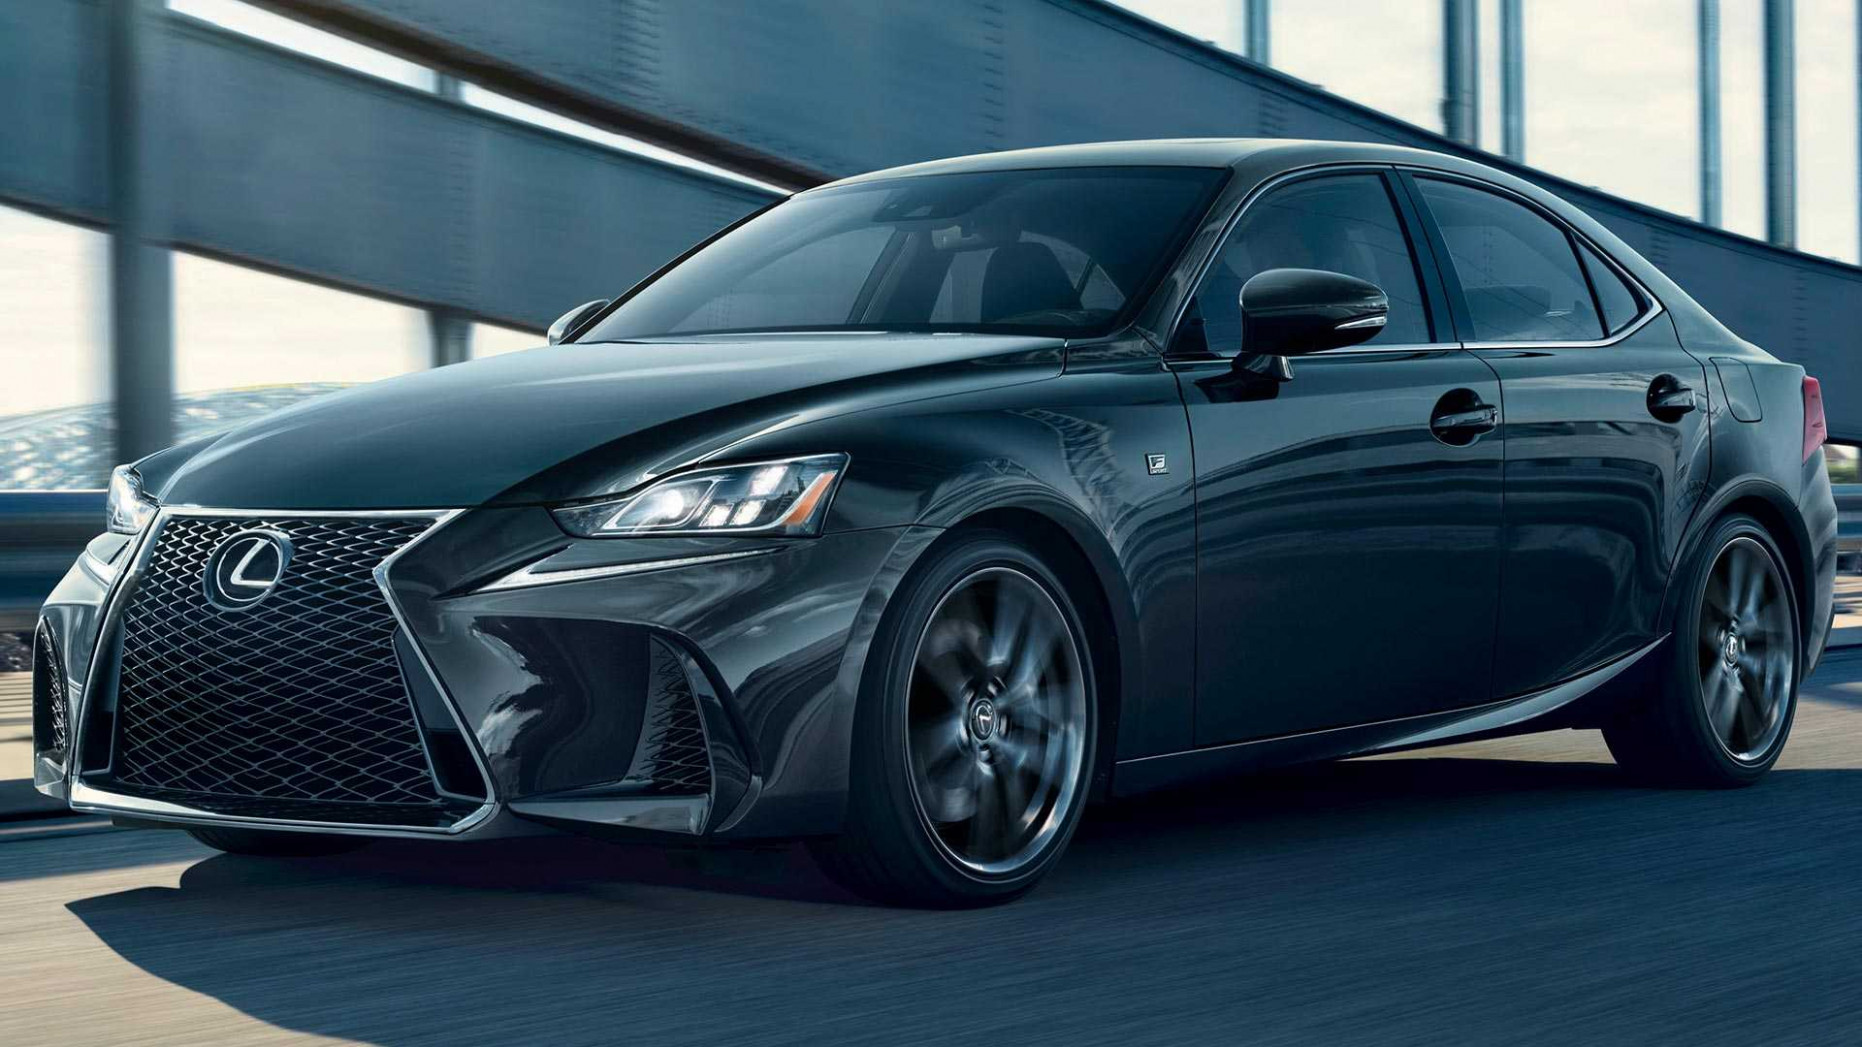 Lexus IS 6 F Sport Black Line Special Edition Adds Darker Style - lexus is 300 f sport 2020